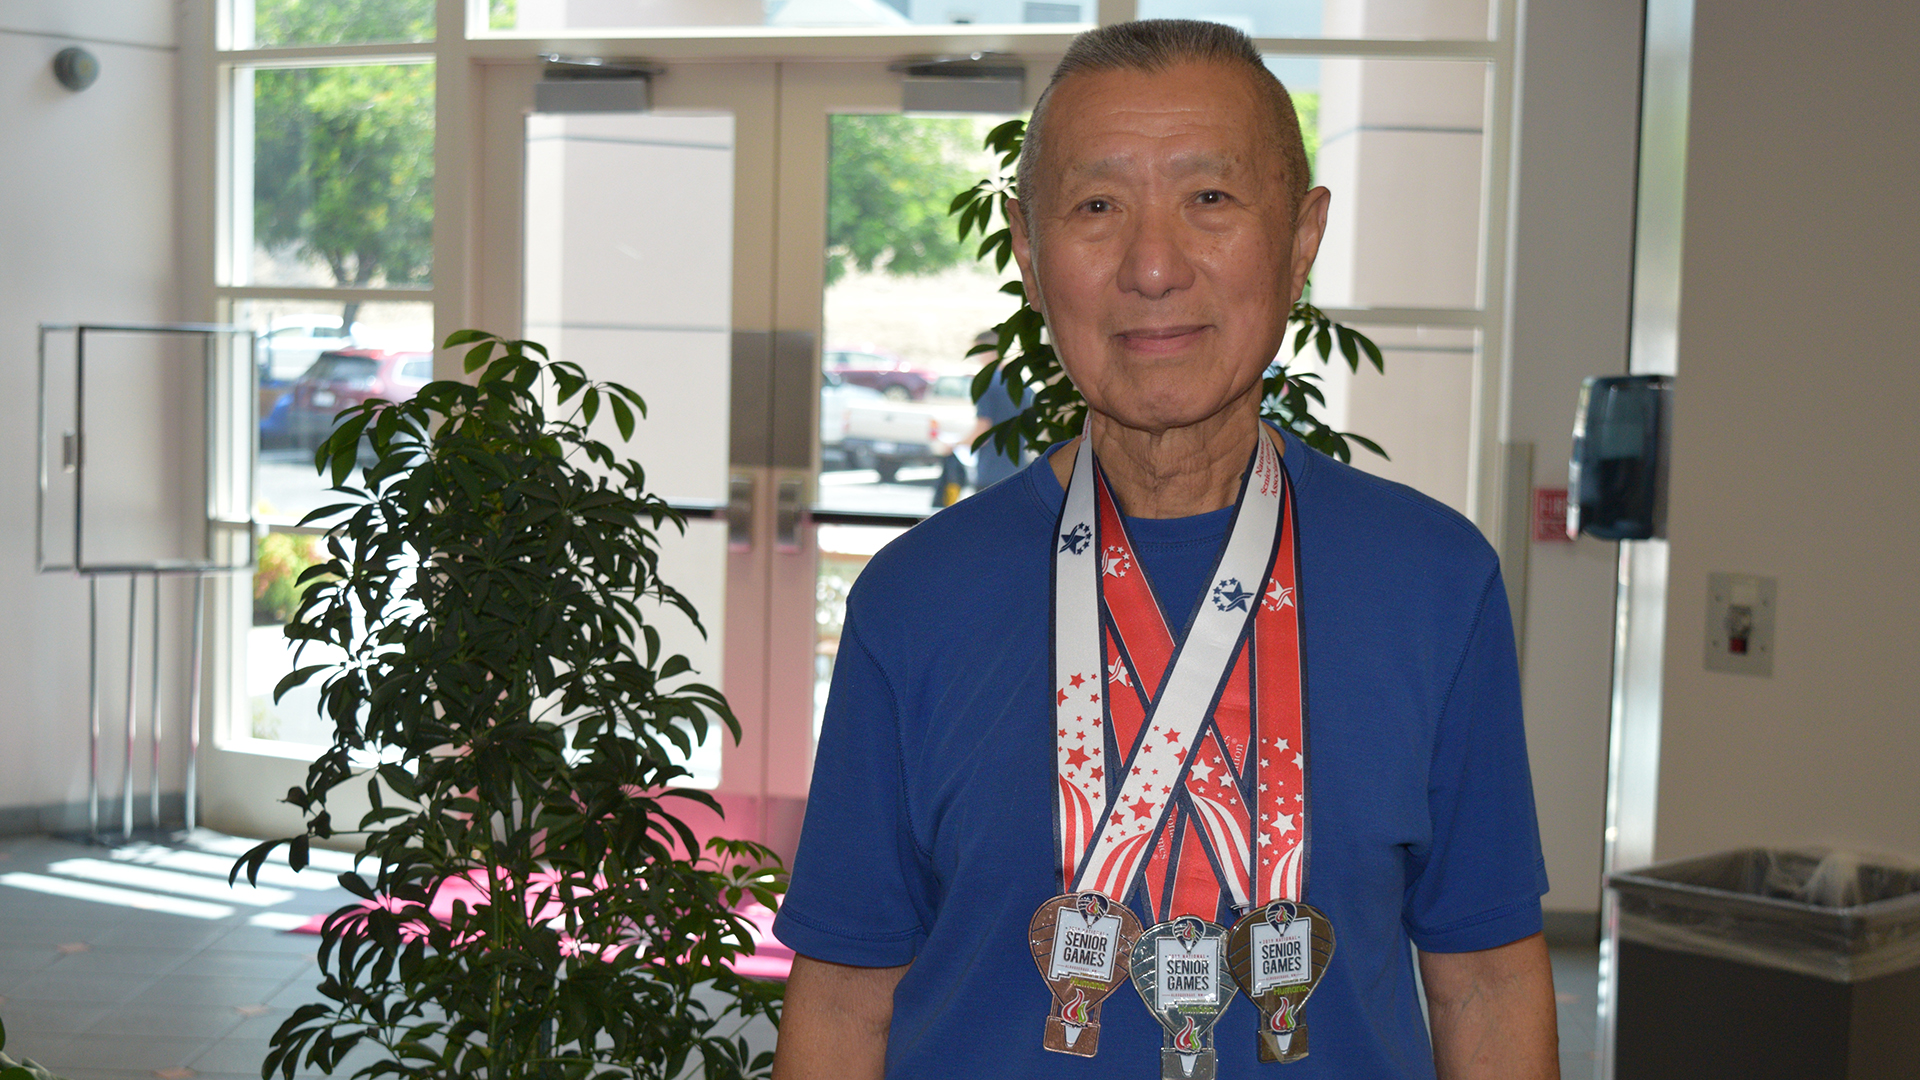 James Ho and his three medals